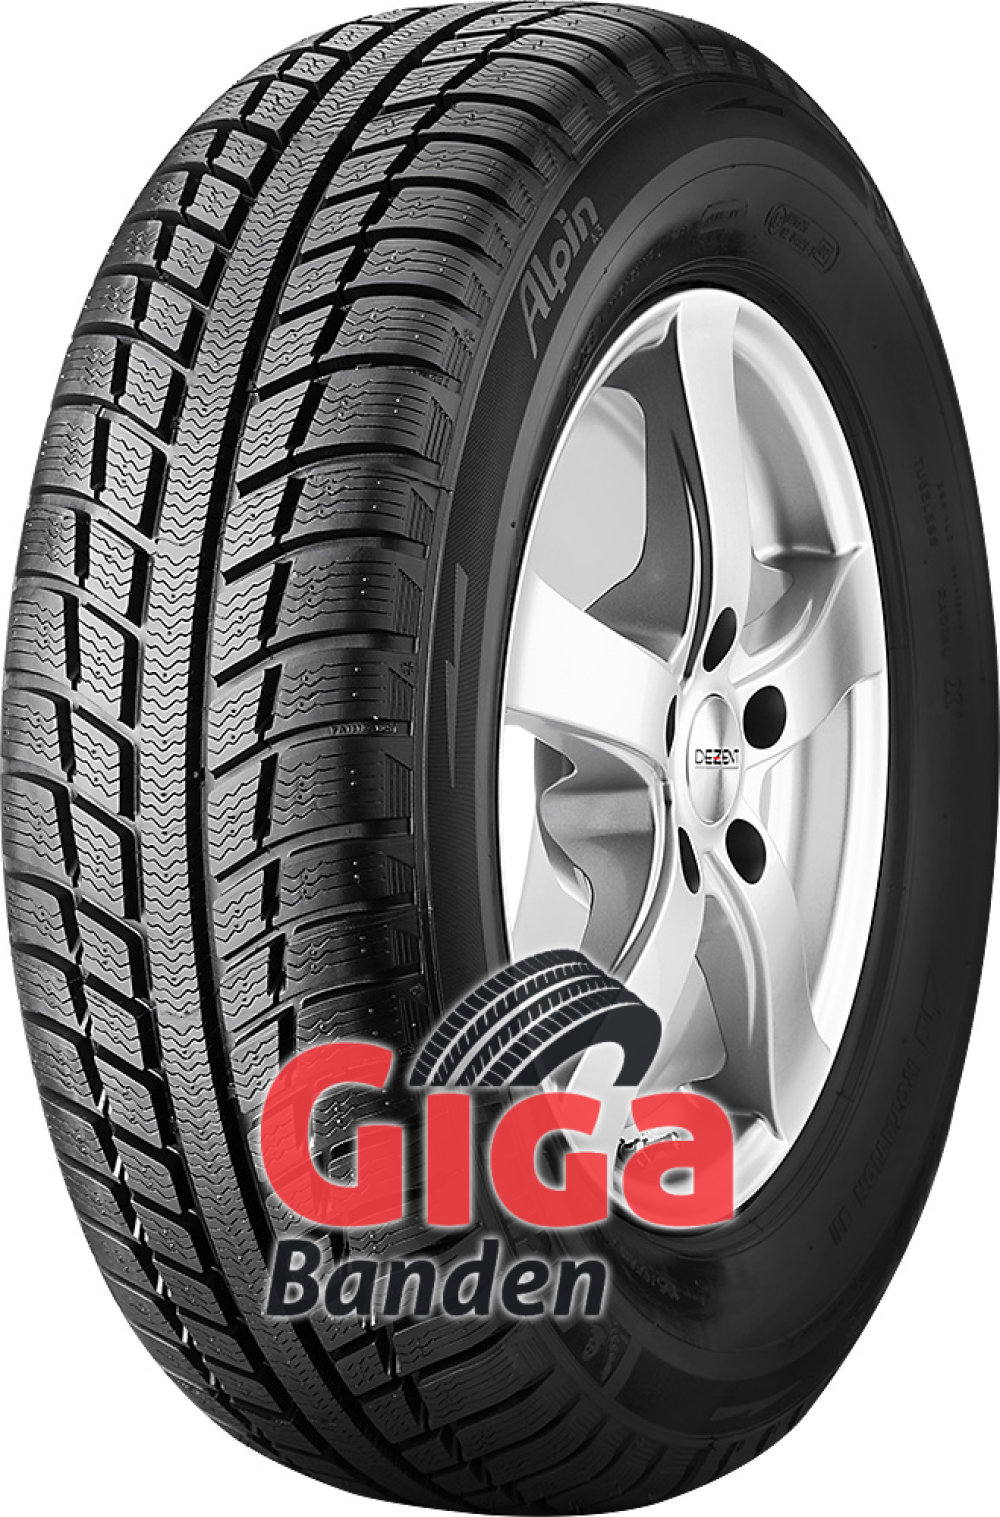 Michelin Alpin A3 ( 165/70 R13 83T XL GRNX )